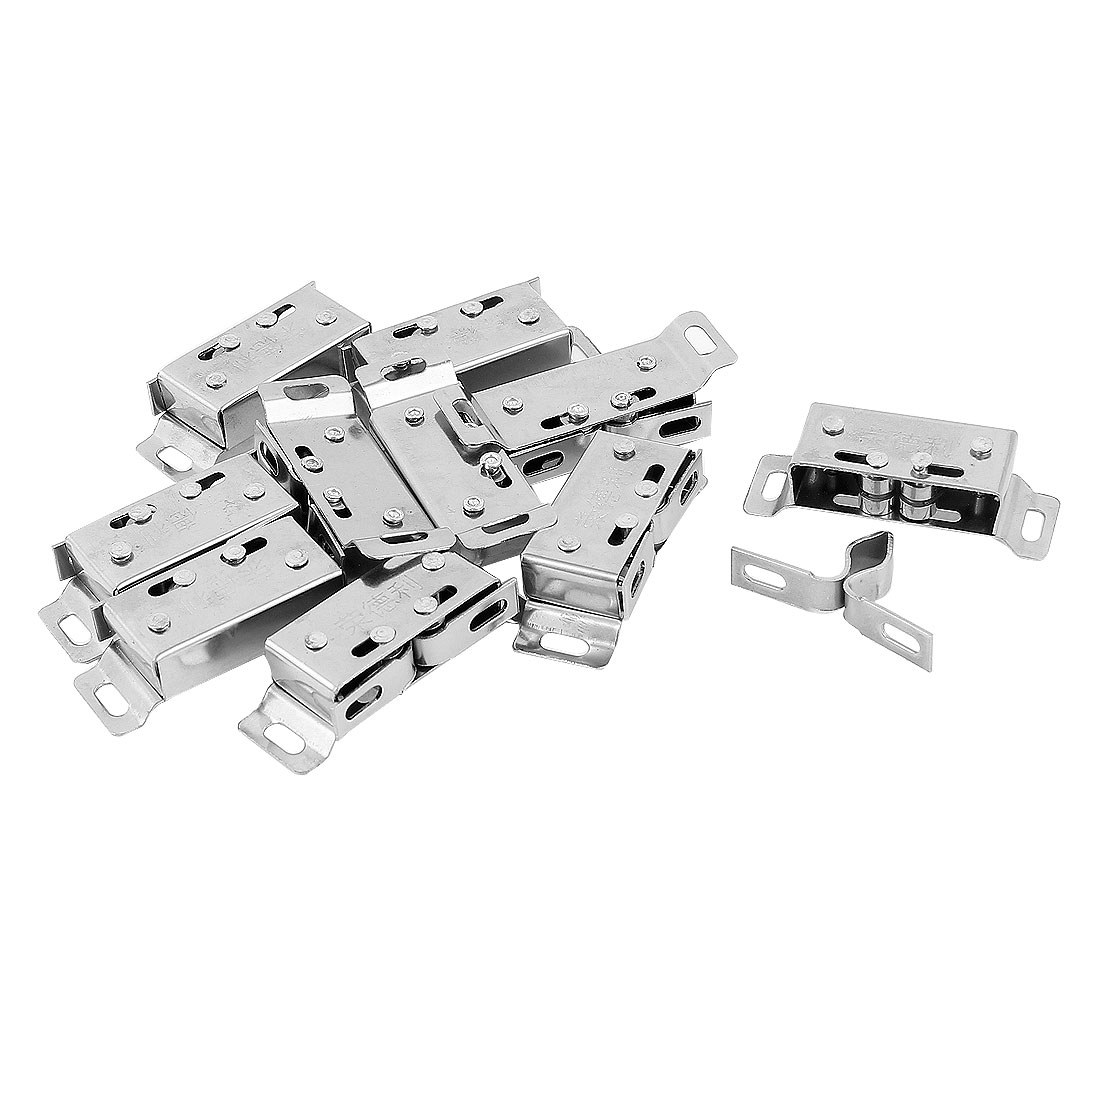 Housing Oven Door Double Roller Catch Latch Silver Tone 10pcs